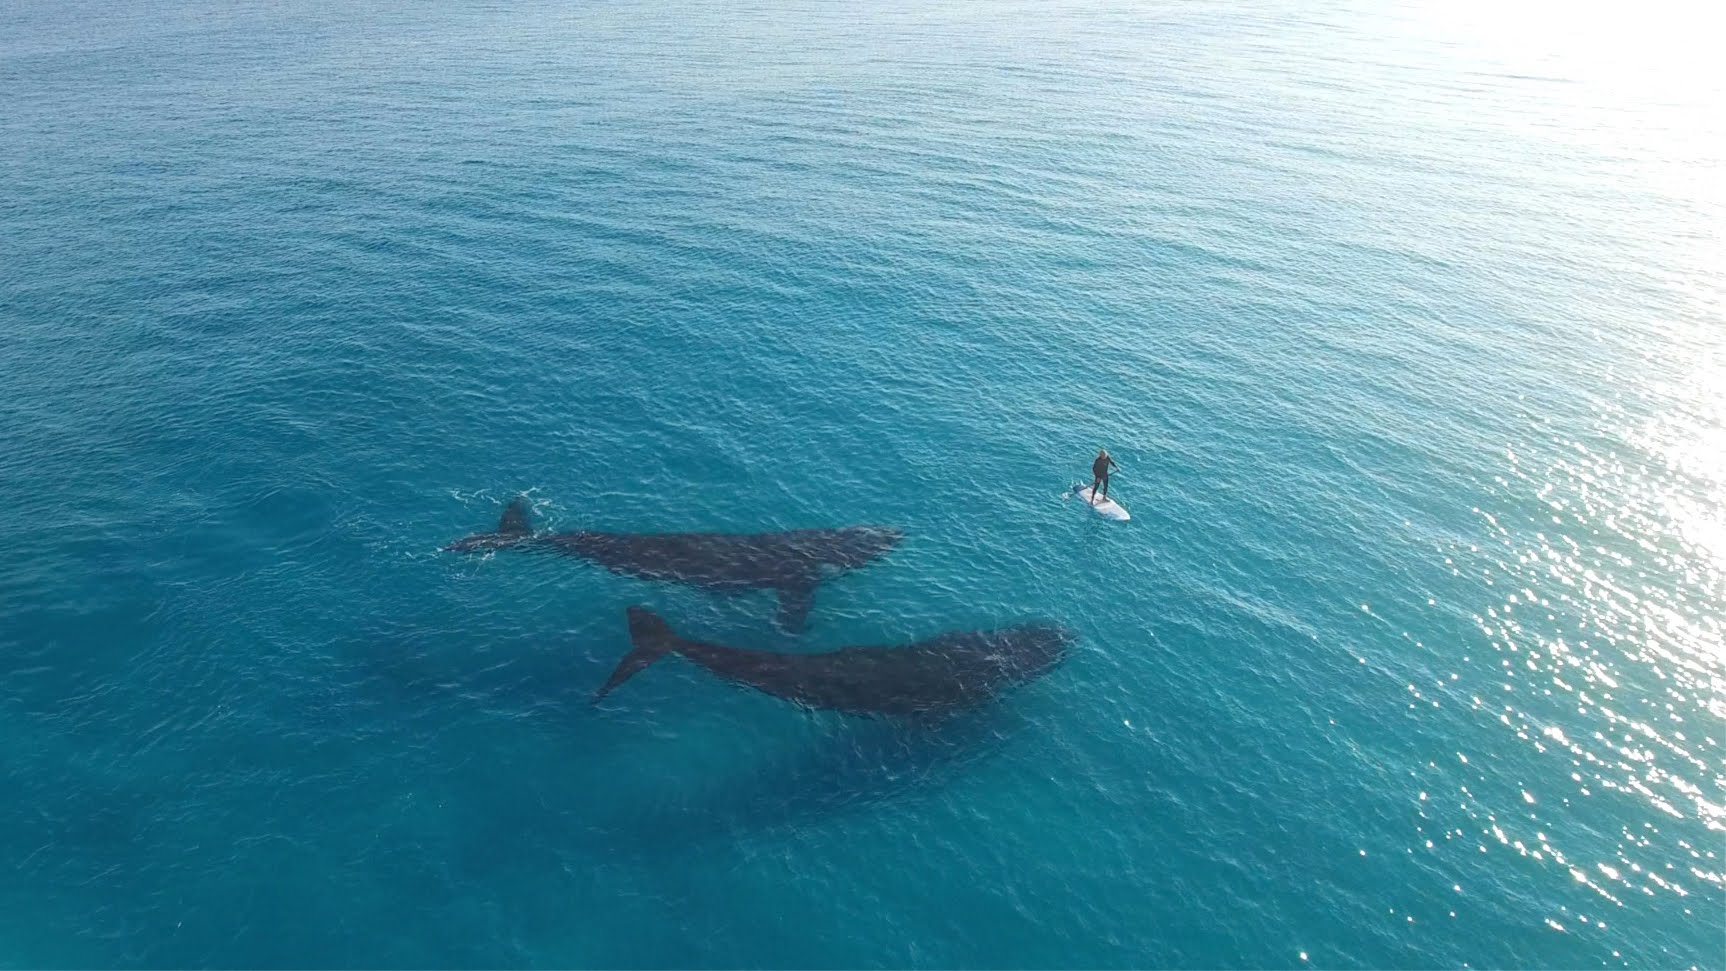 Sharing the ocean with whales